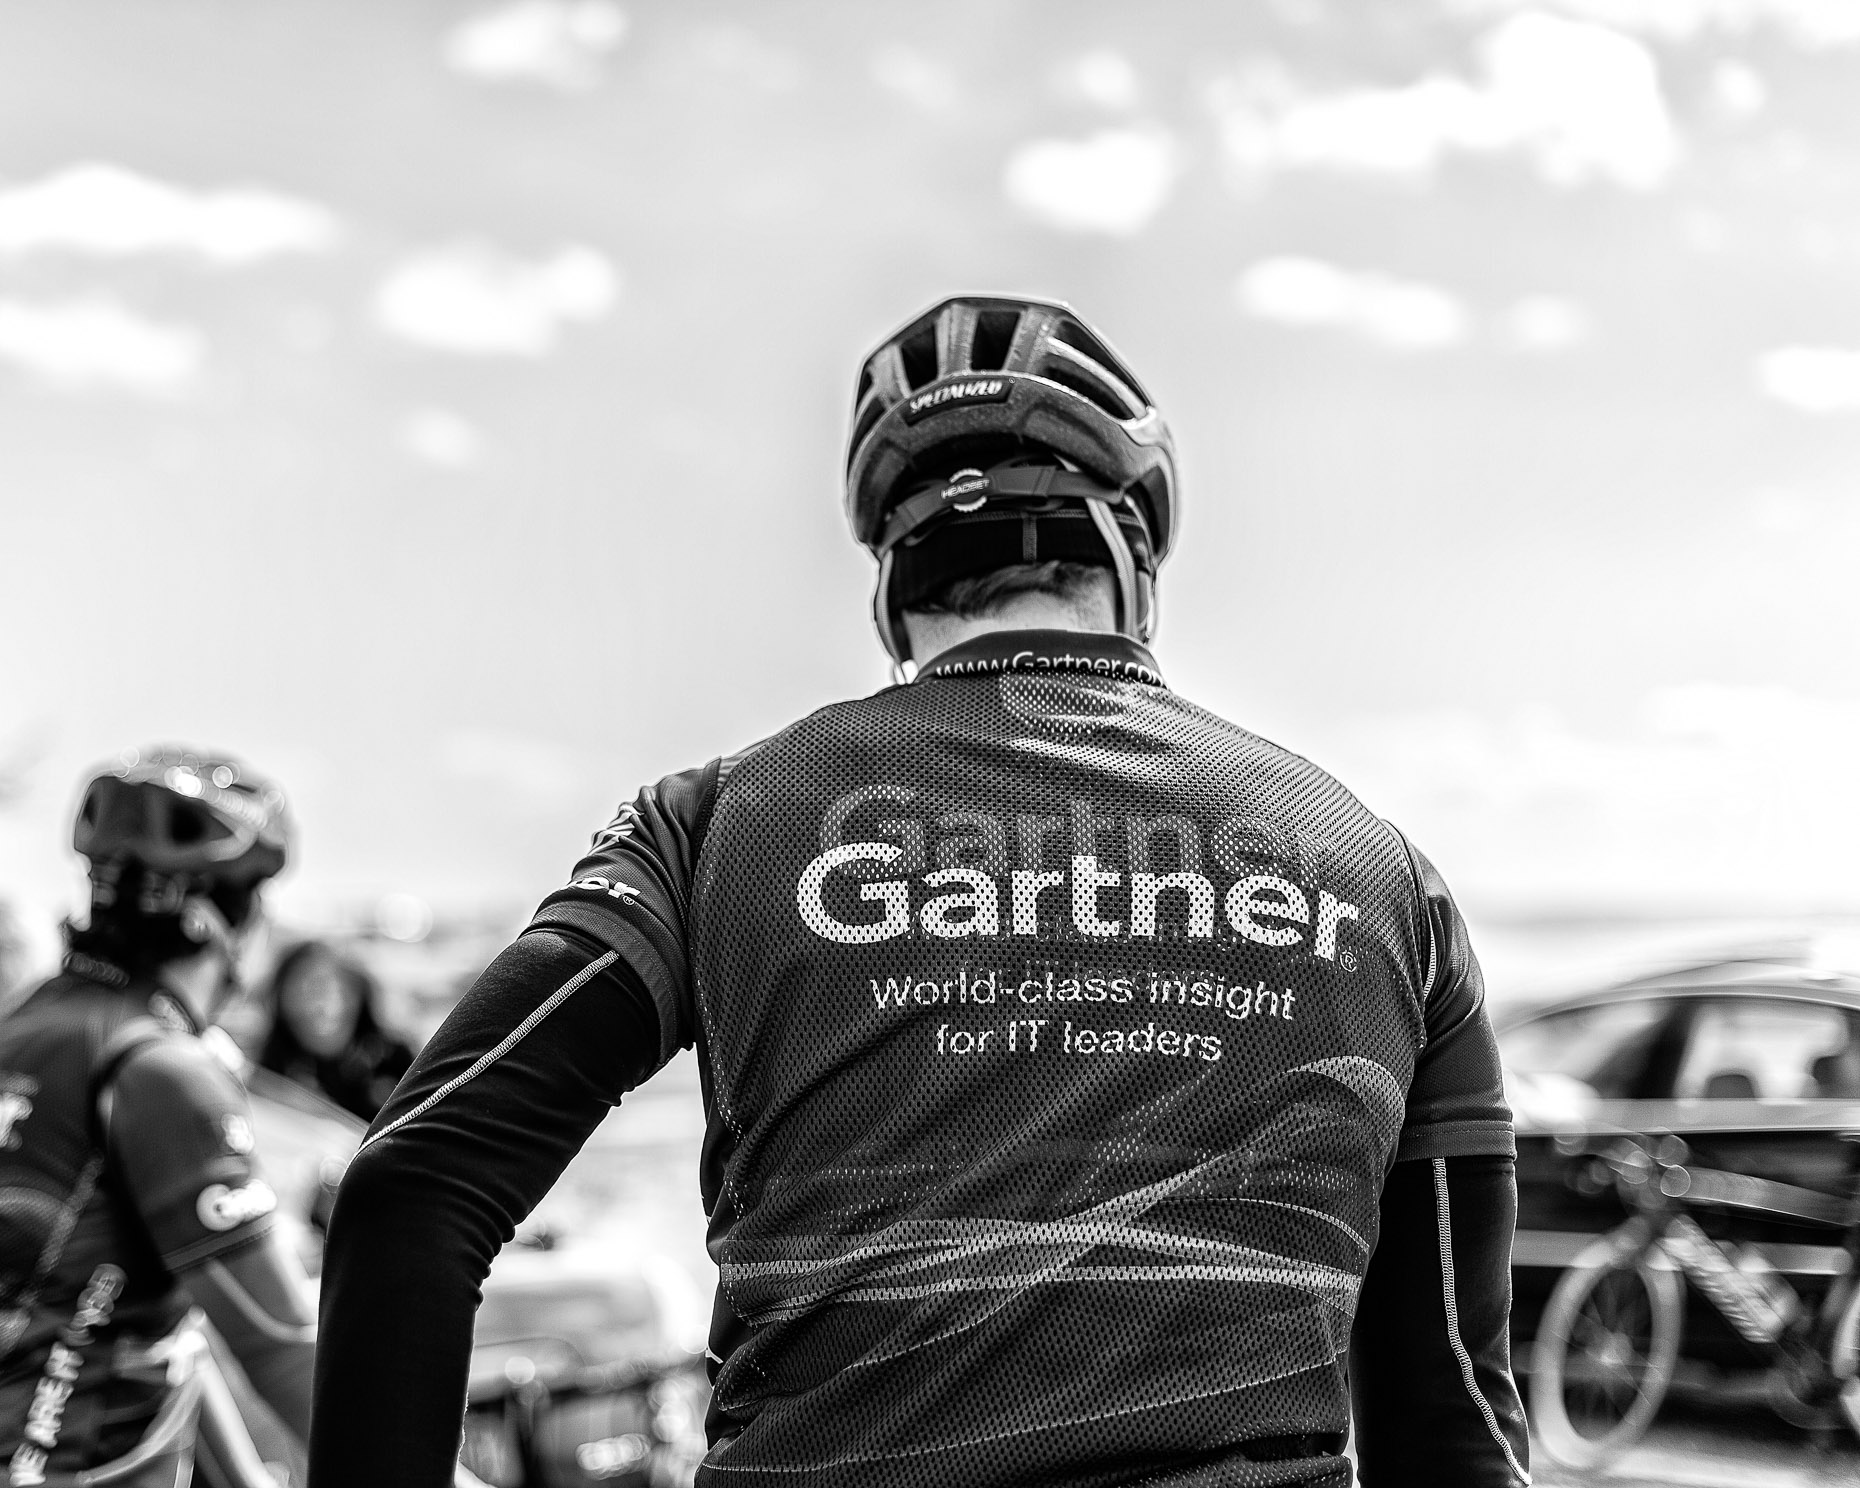 Black and white photograph of man on bicycle wearing mesh gartner jersey and helmet